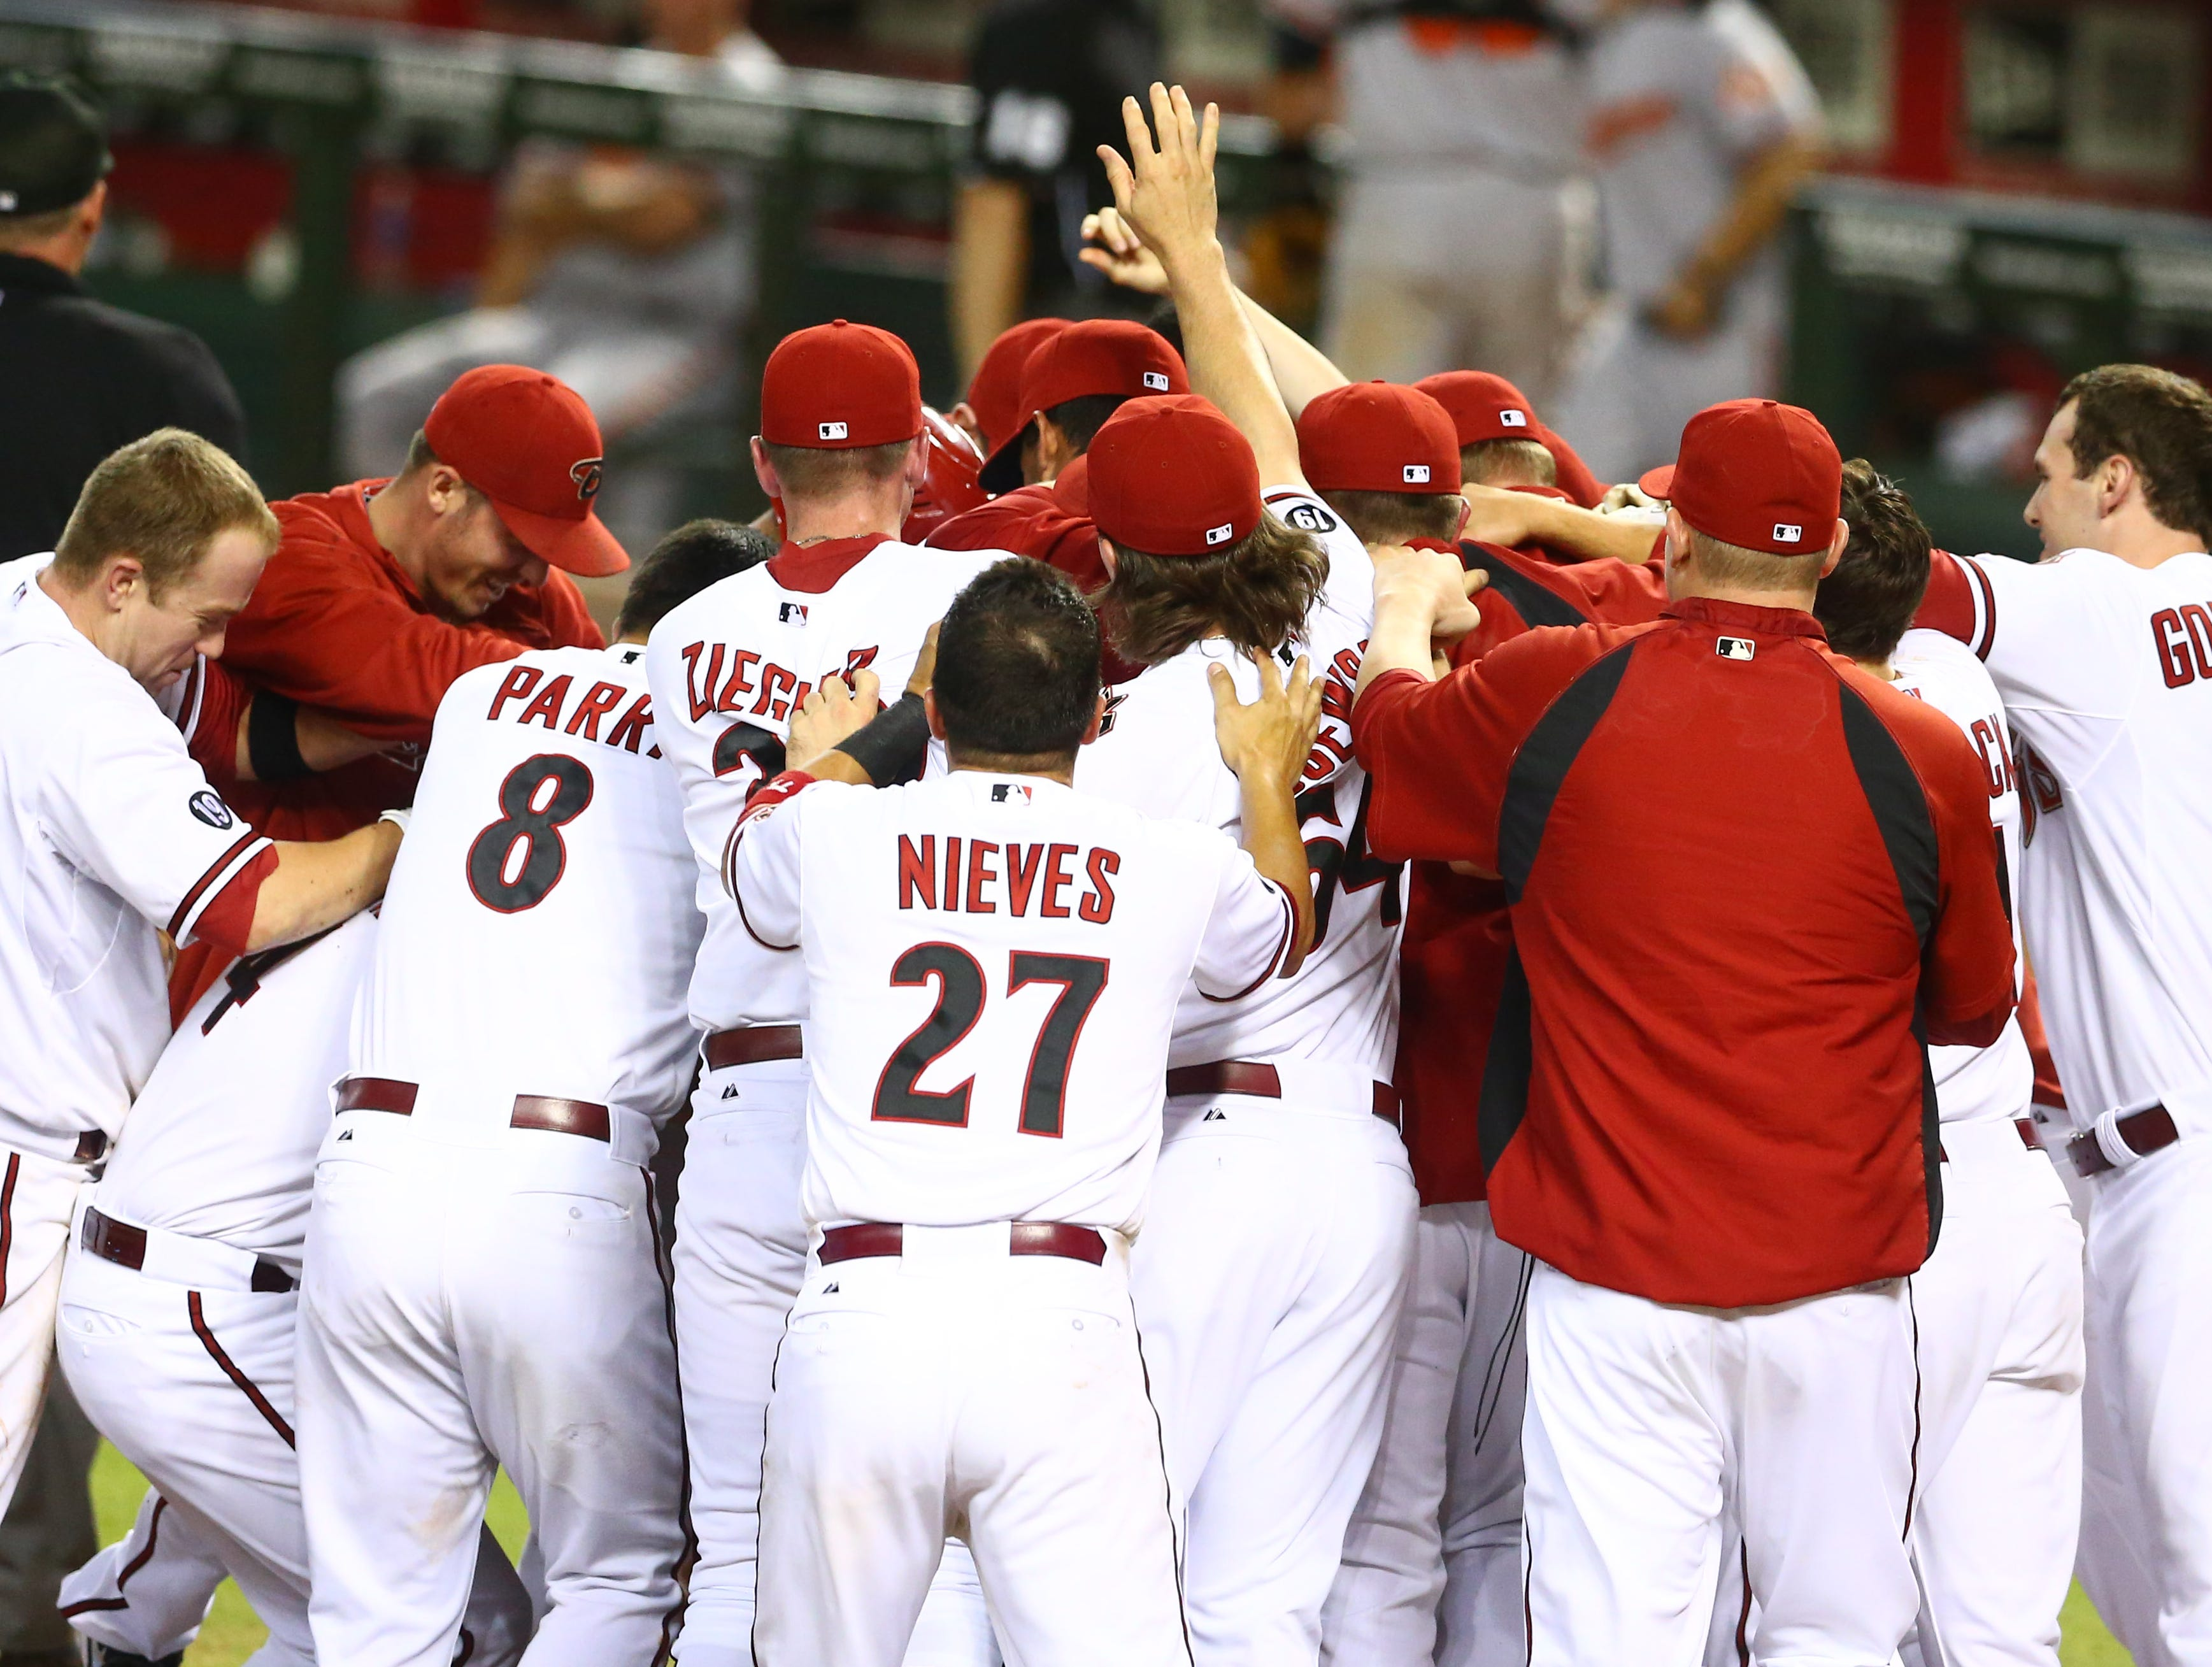 Aug. 12: Arizona Diamondbacks outfielder Adam Eaton is congratulated by teammates after hitting a walk-off home run against the Baltimore Orioles.